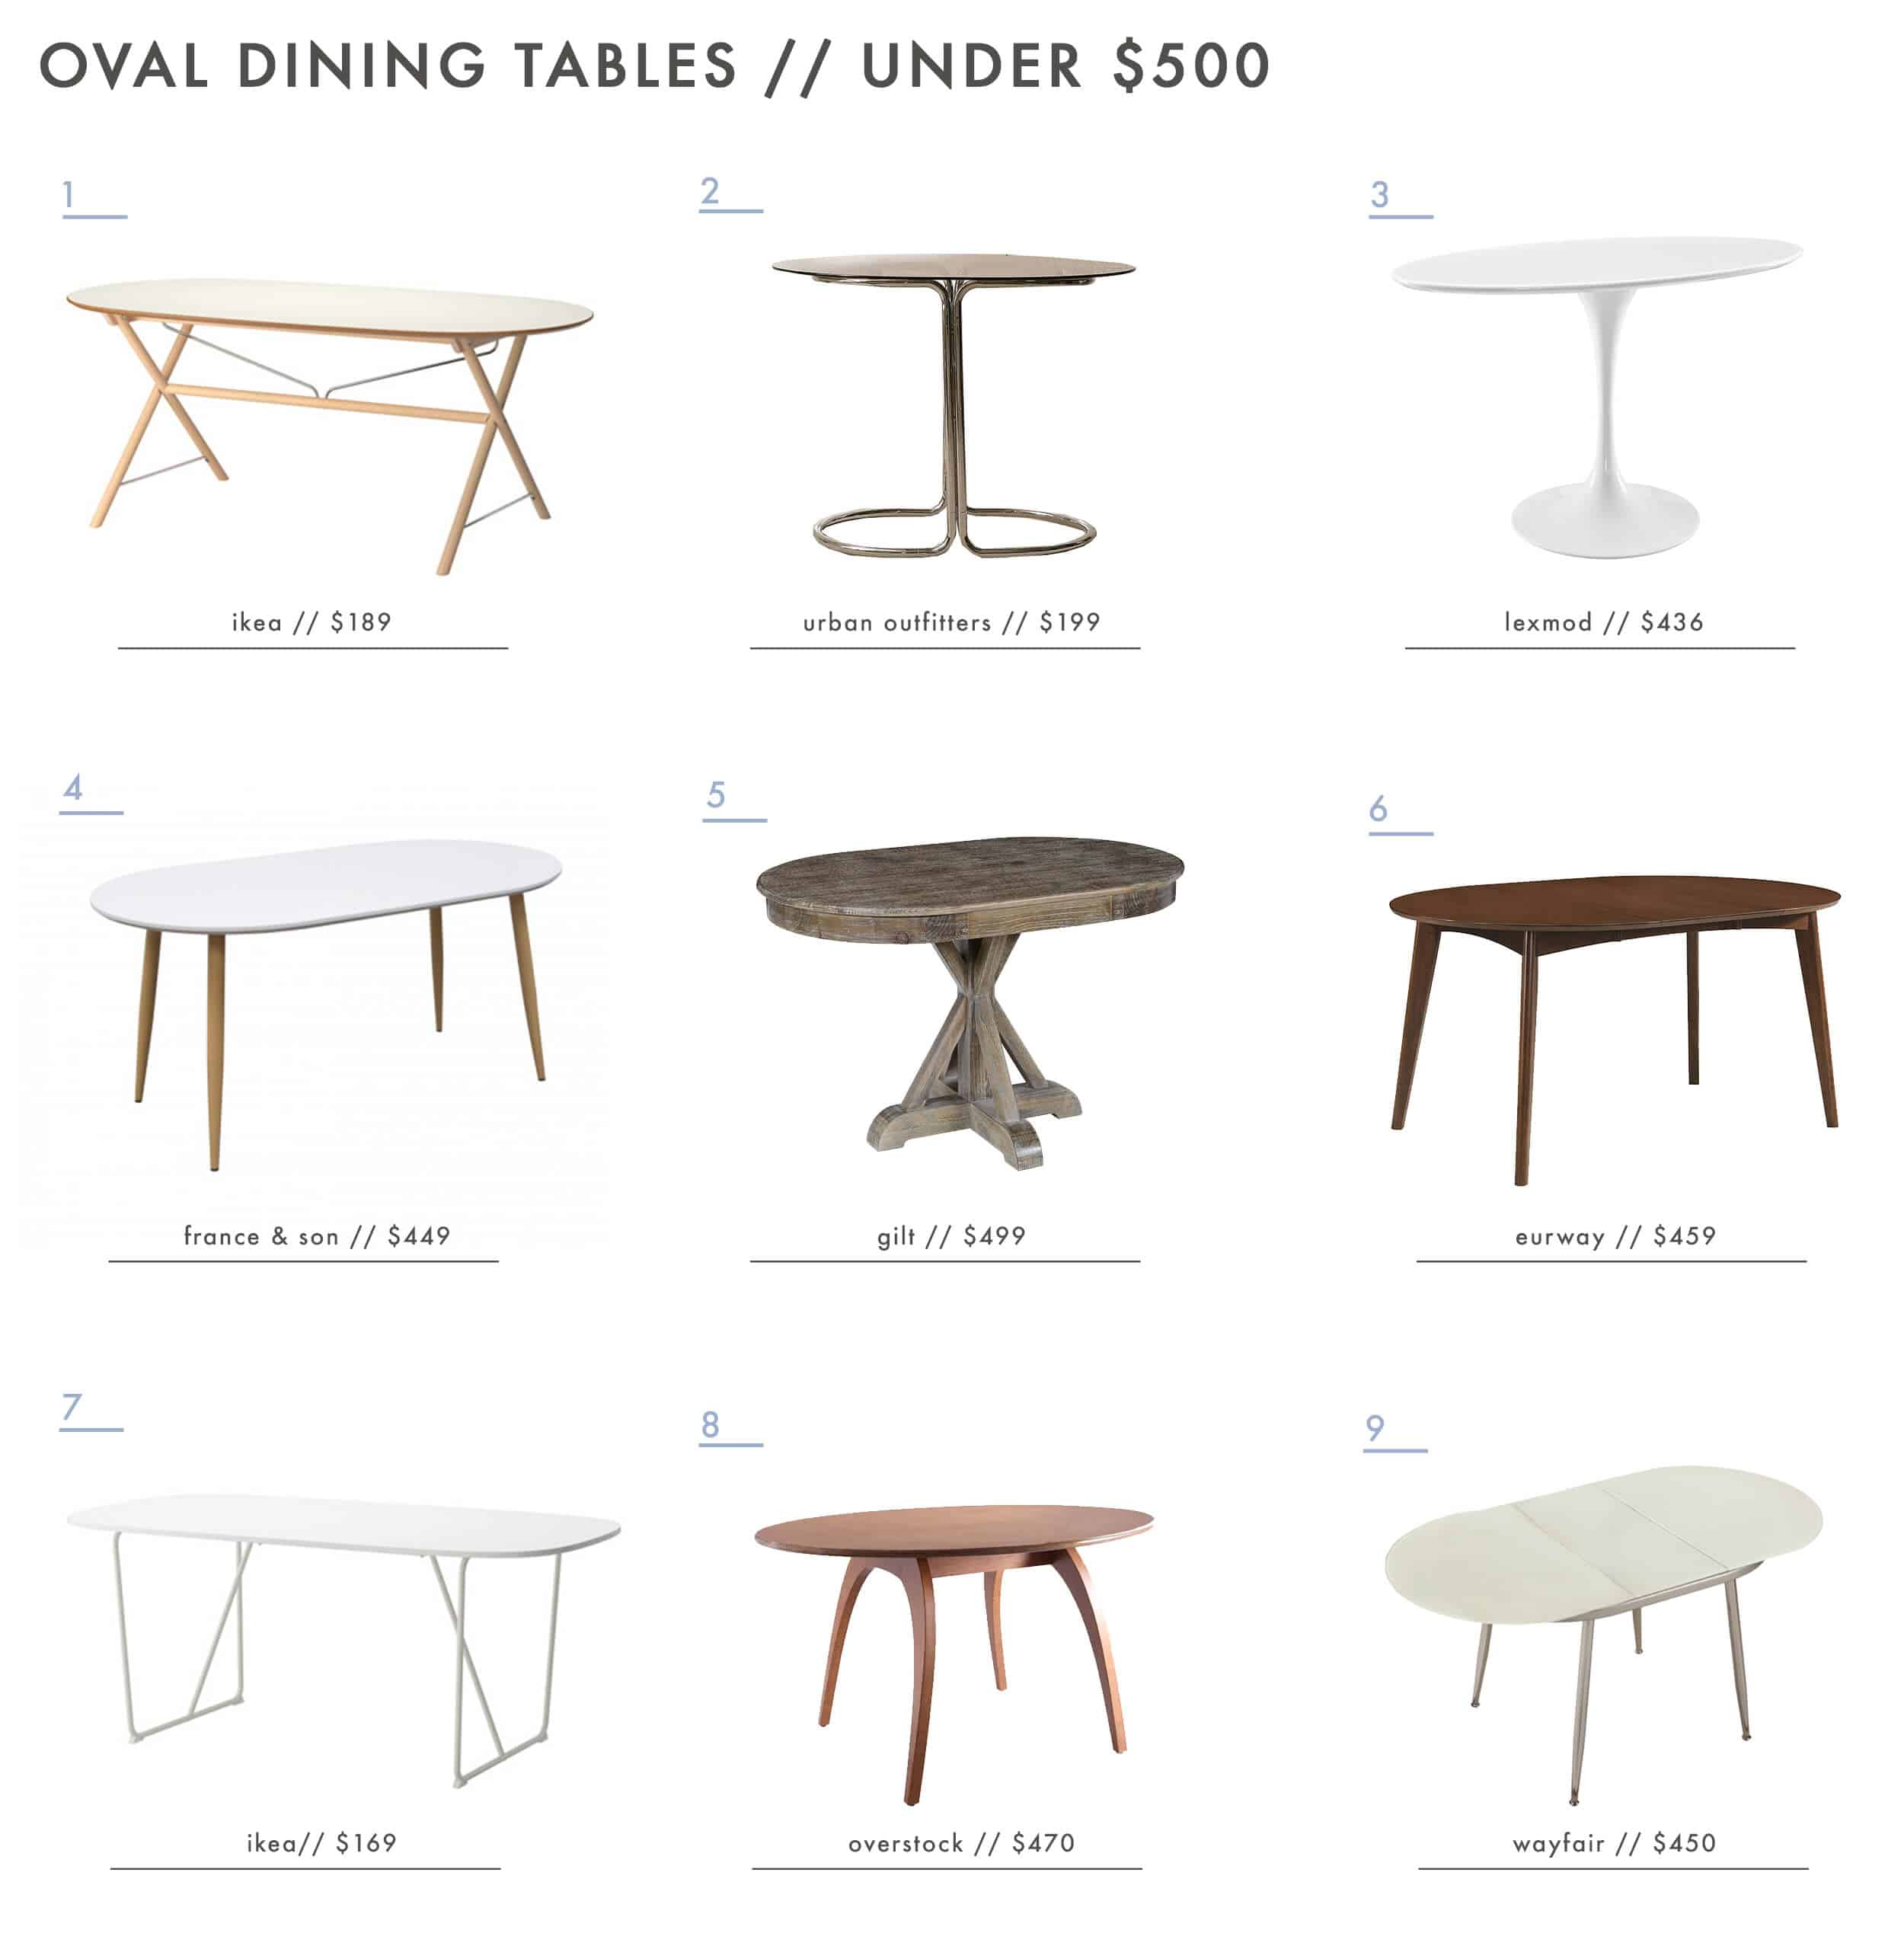 Emily-Henderson_Dining-Tables_Dining-Room_Oval-Dining-Tables_Under-500